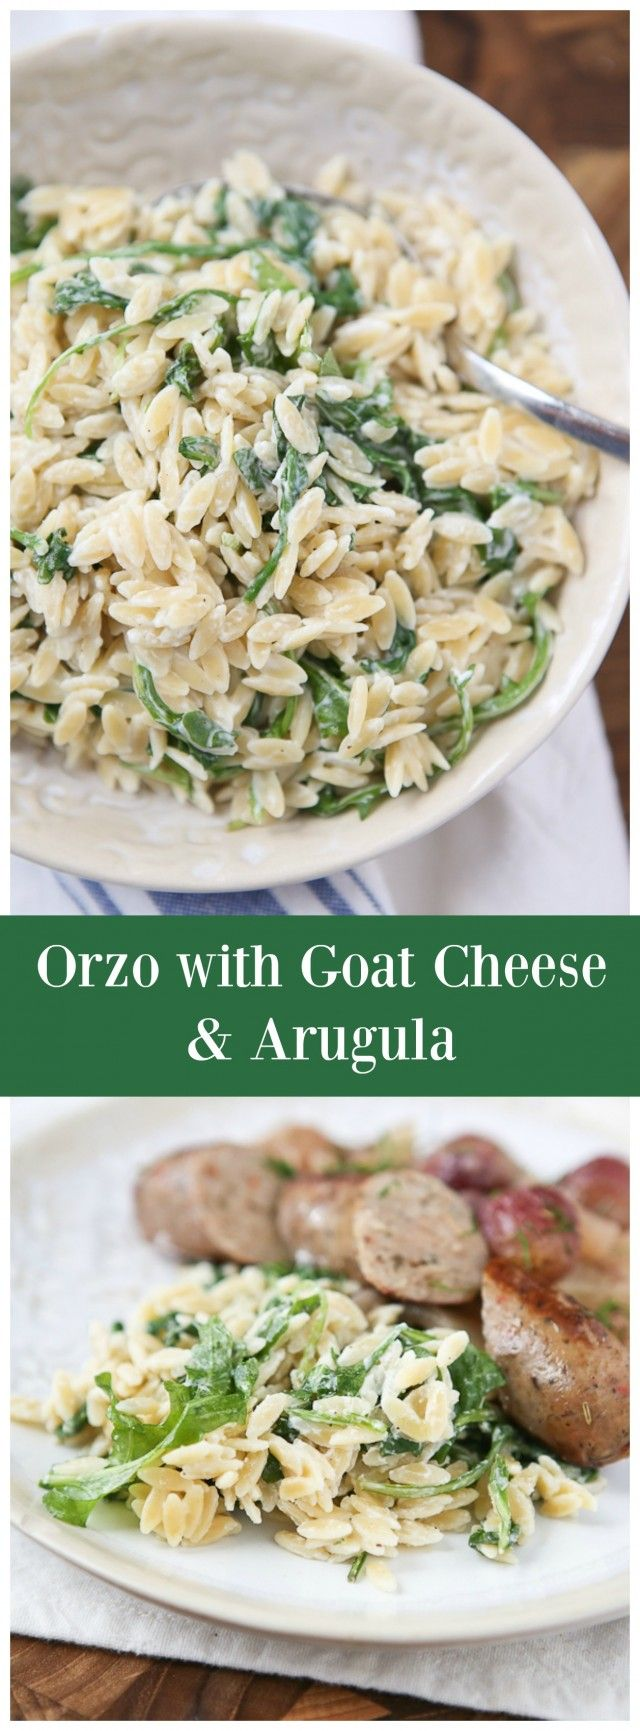 Orzo with Goat Cheese and Arugula from aggieskitchen.com - my family loves when I make this pasta side dish!